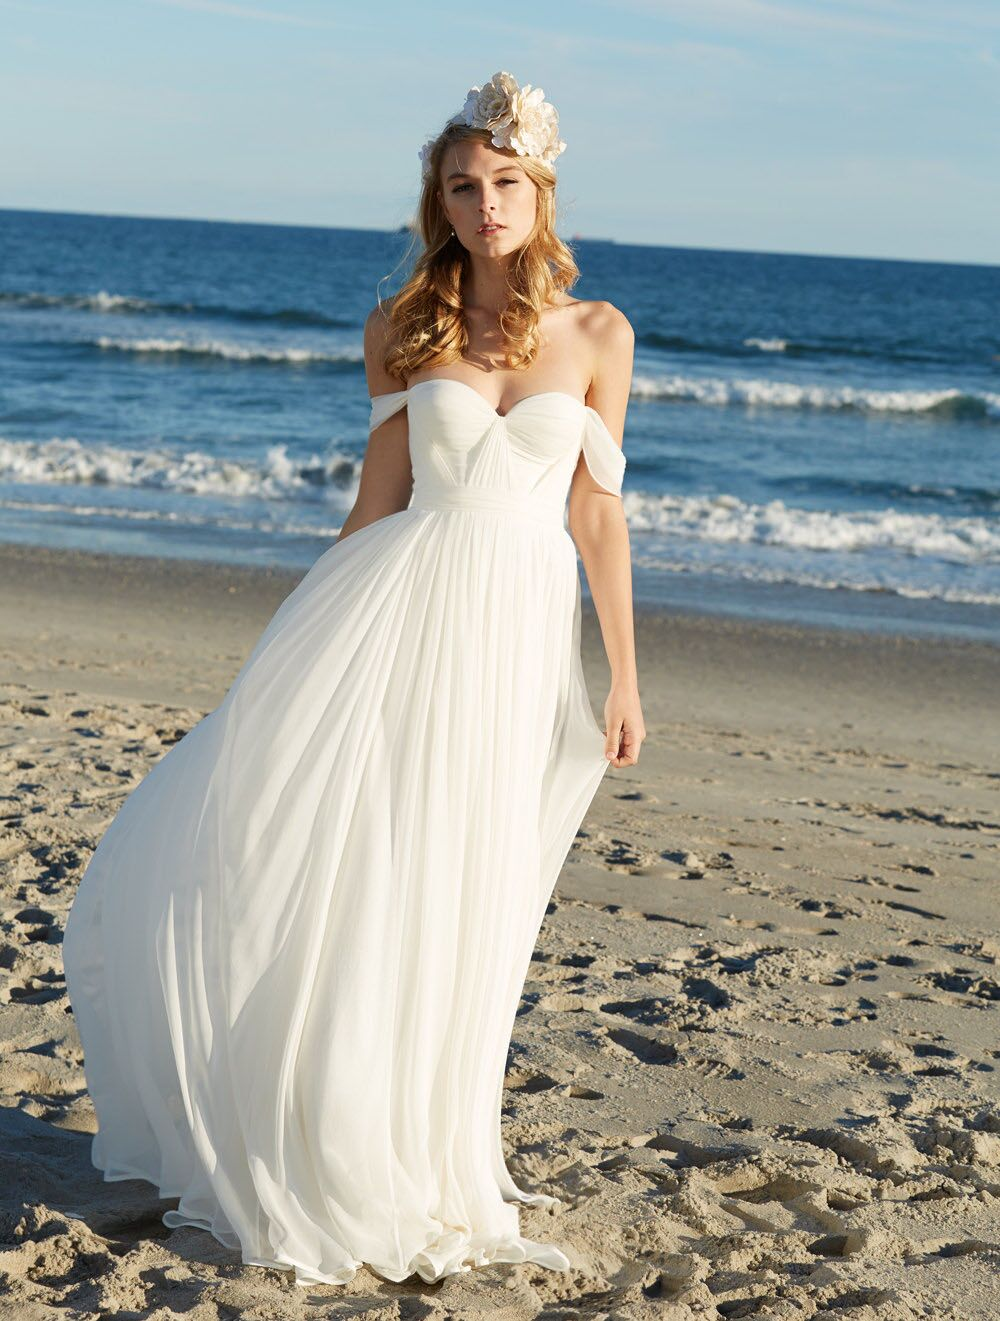 13da811ad9 FREE Shipping DHL Off The Shoulder White Bridal Gown,Bridesmaid  Dress,Formal Gown With Draped Bodice